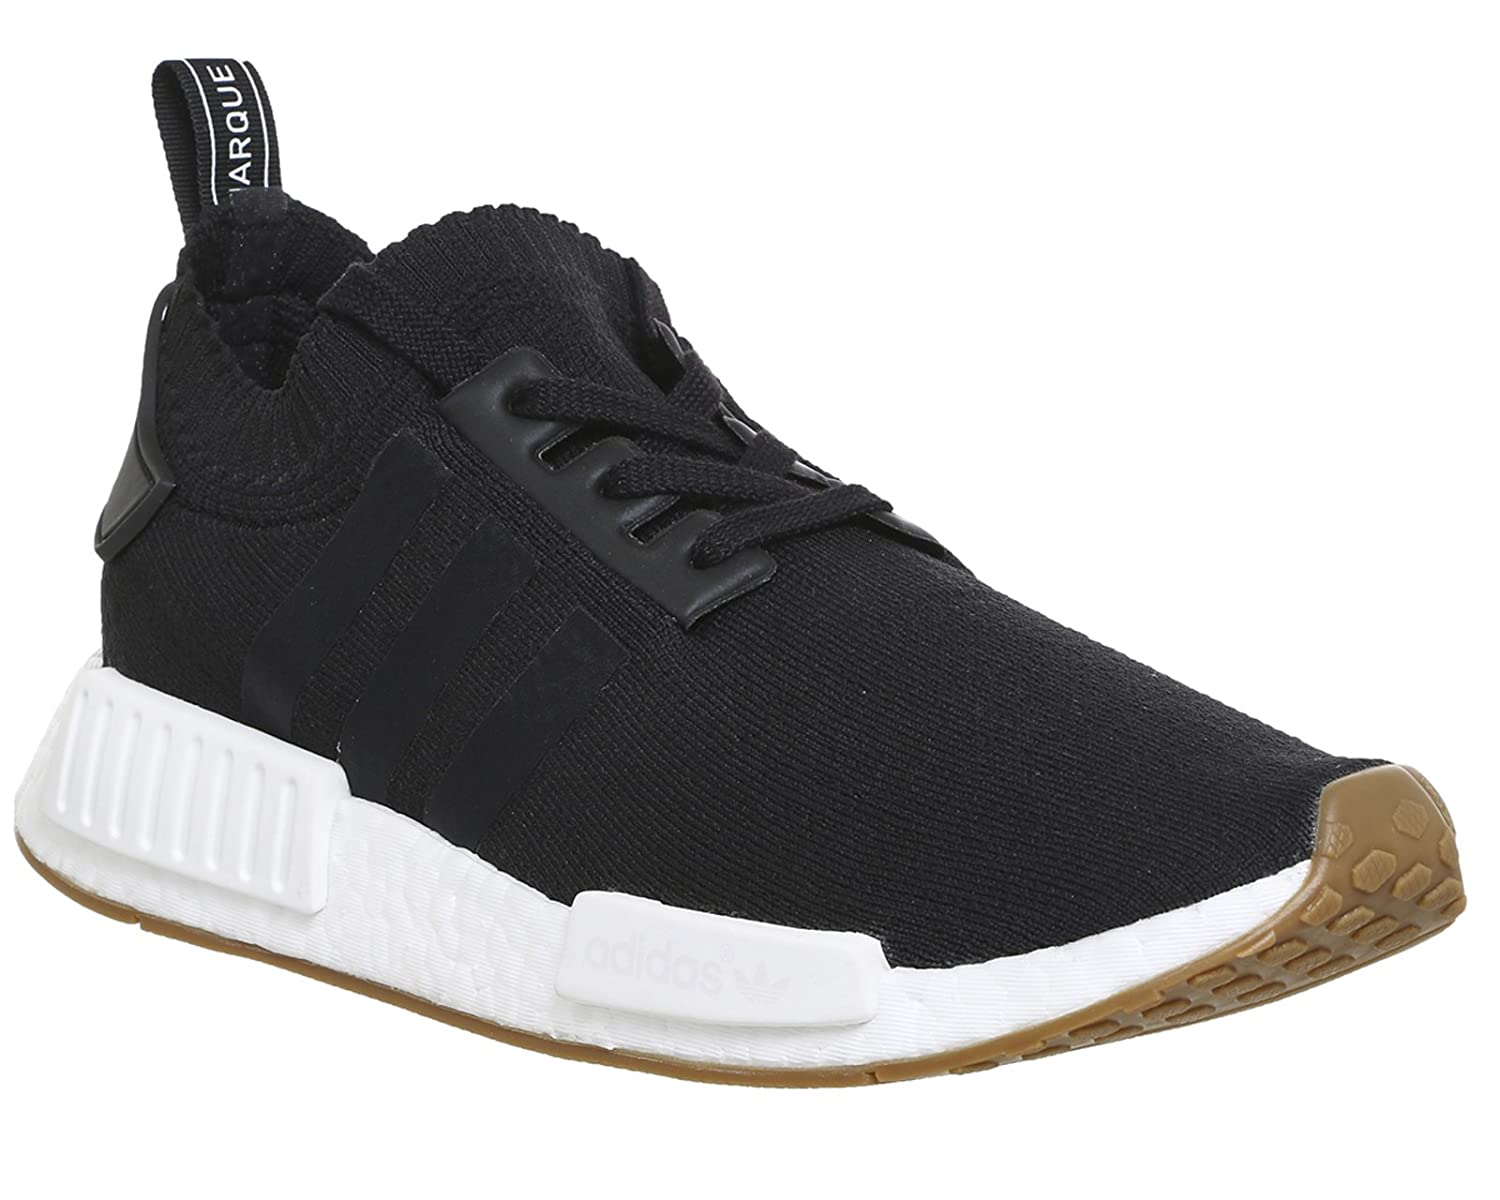 Adidas NMD R1 PK 887 Gum Pack, Zapatillas Unisex Adulto BY1887